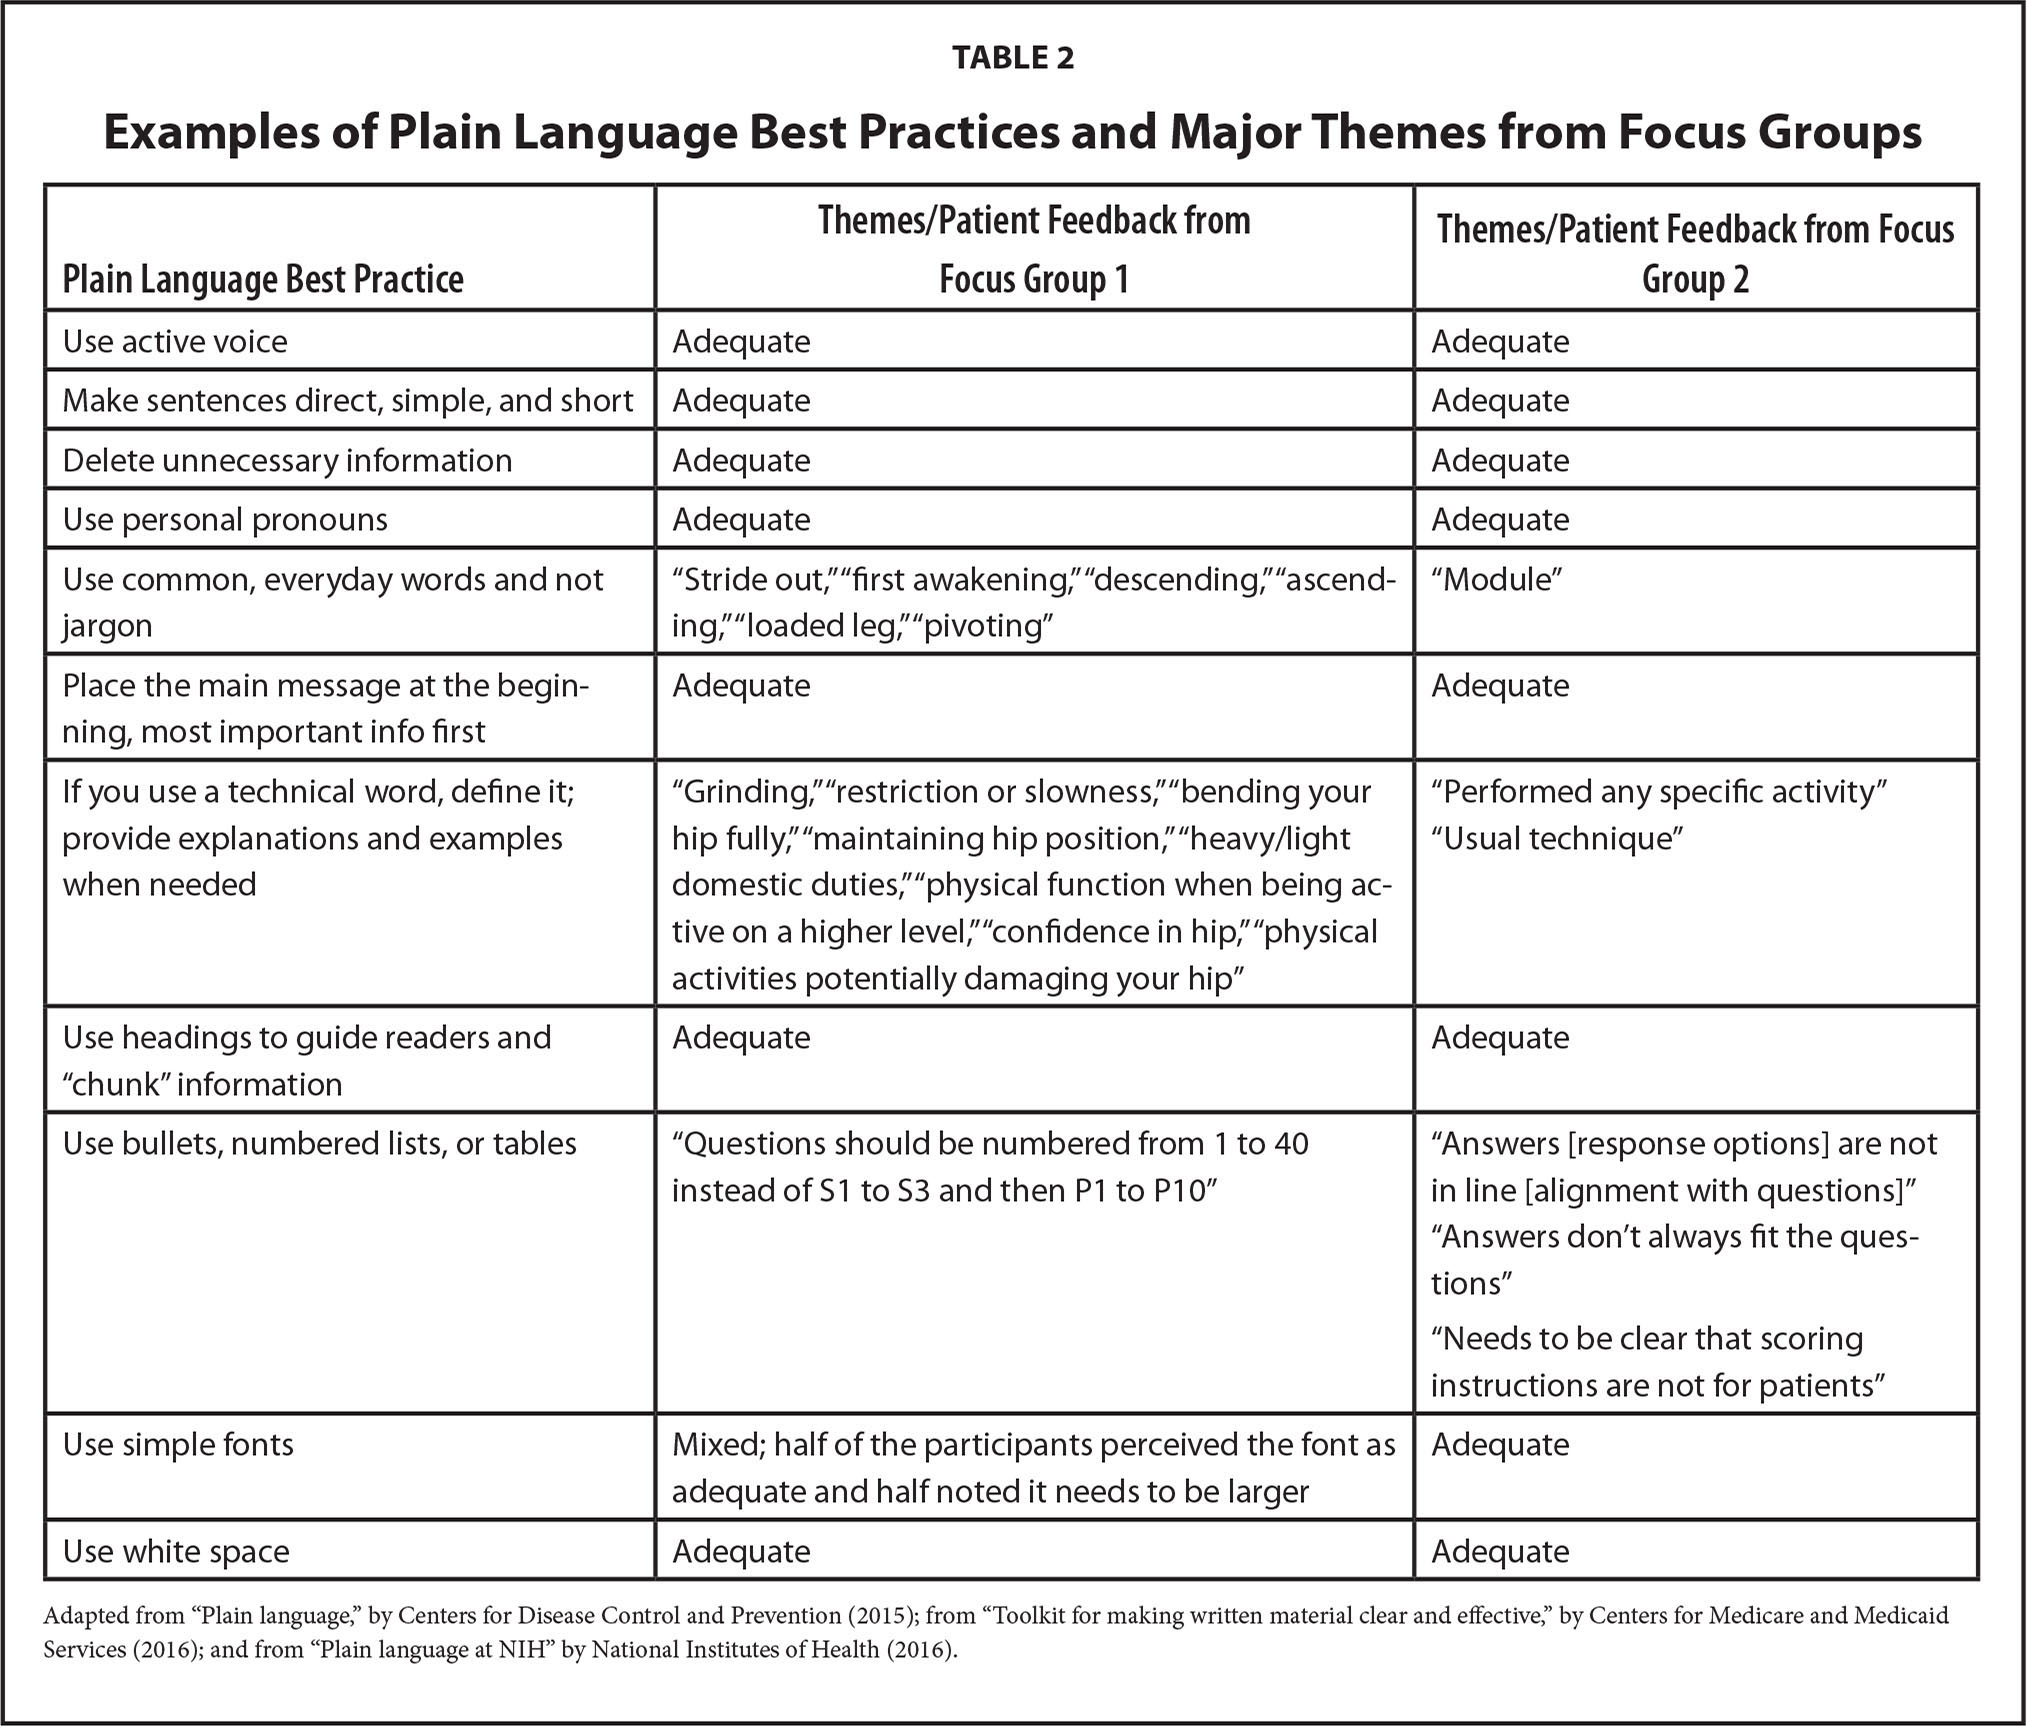 Examples of Plain Language Best Practices and Major Themes from Focus Groups